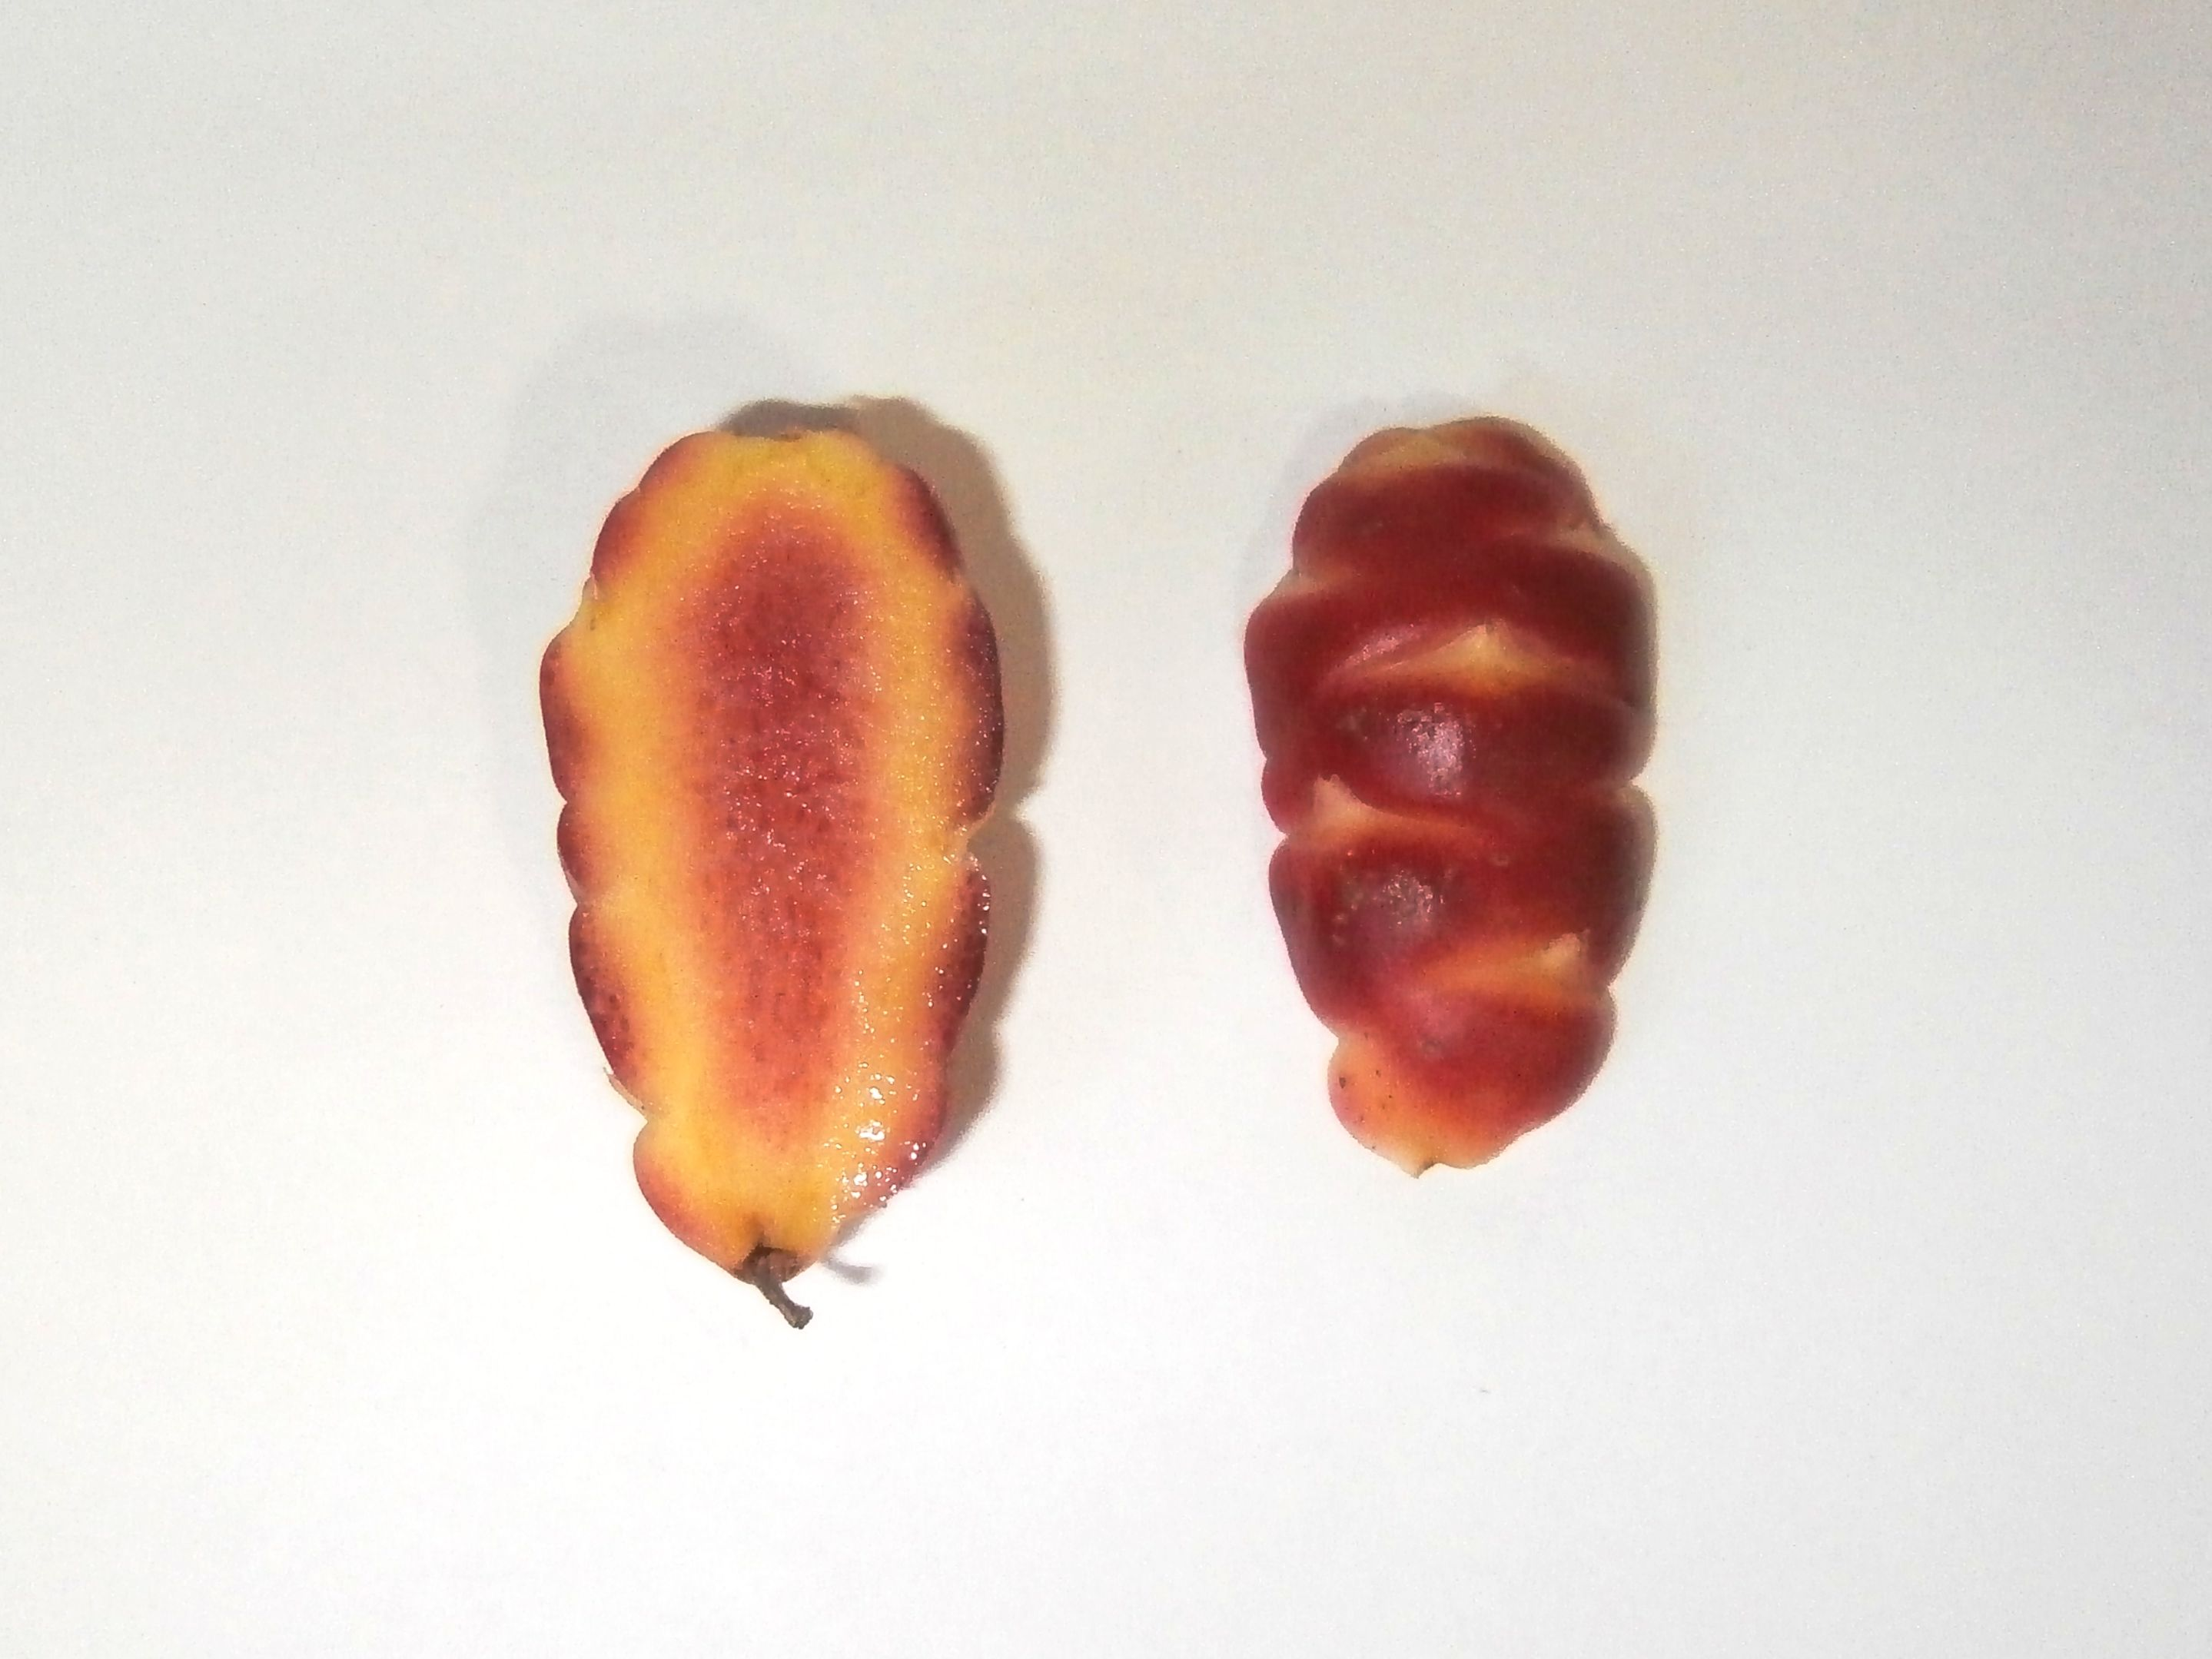 Bolivian Red oca tuber interior